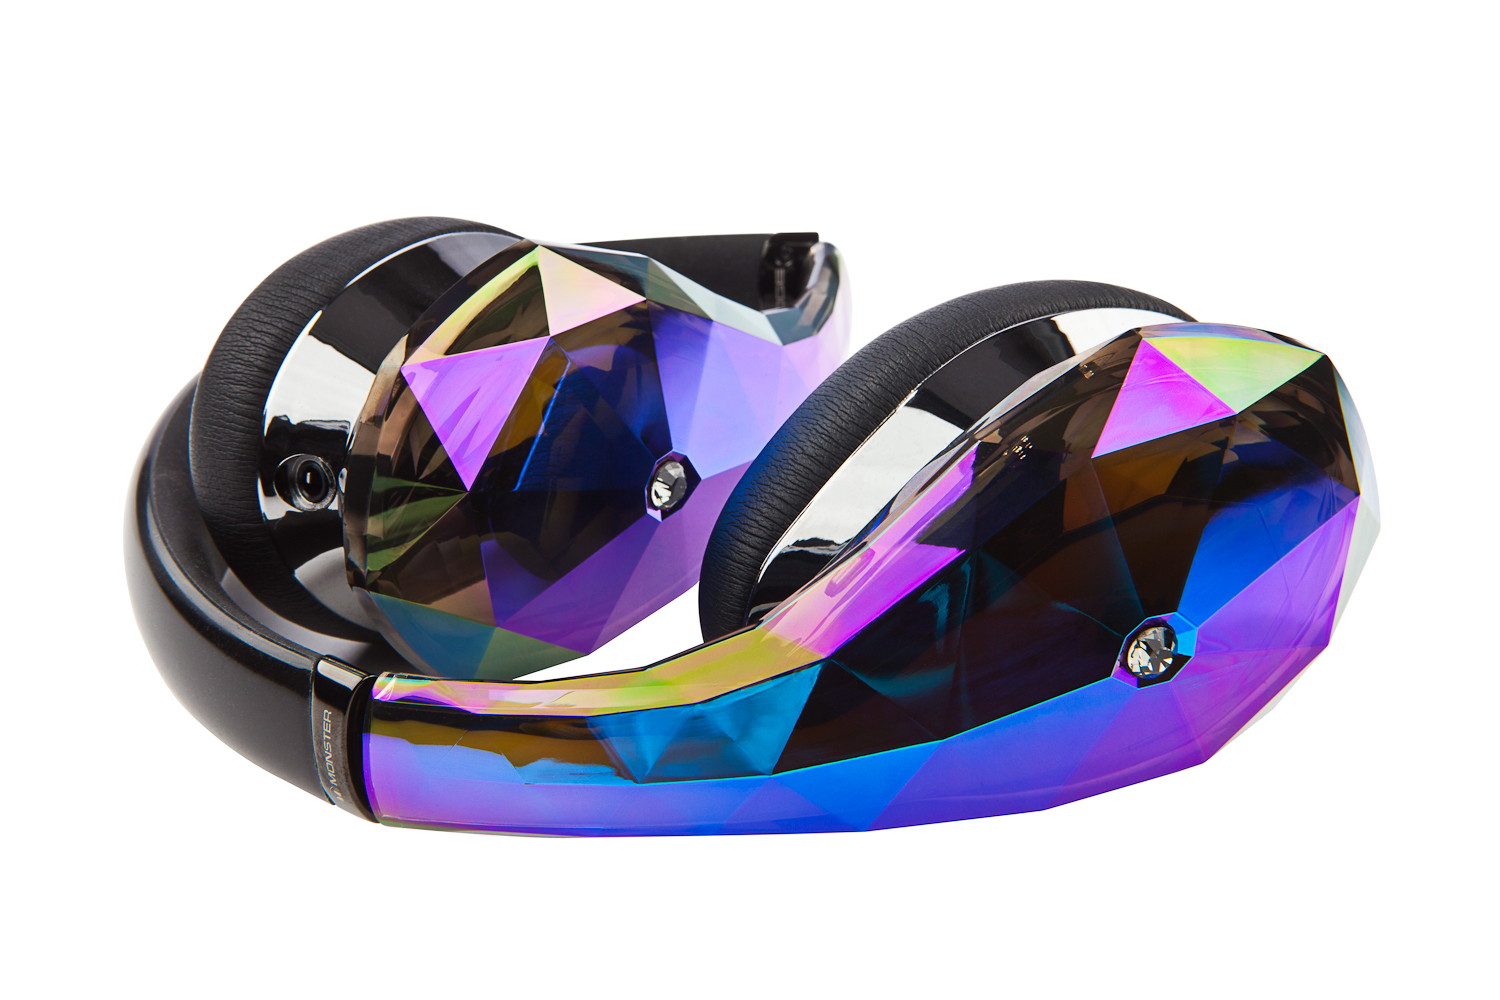 Monster launches extensive 2013 headphone lineup in more colours